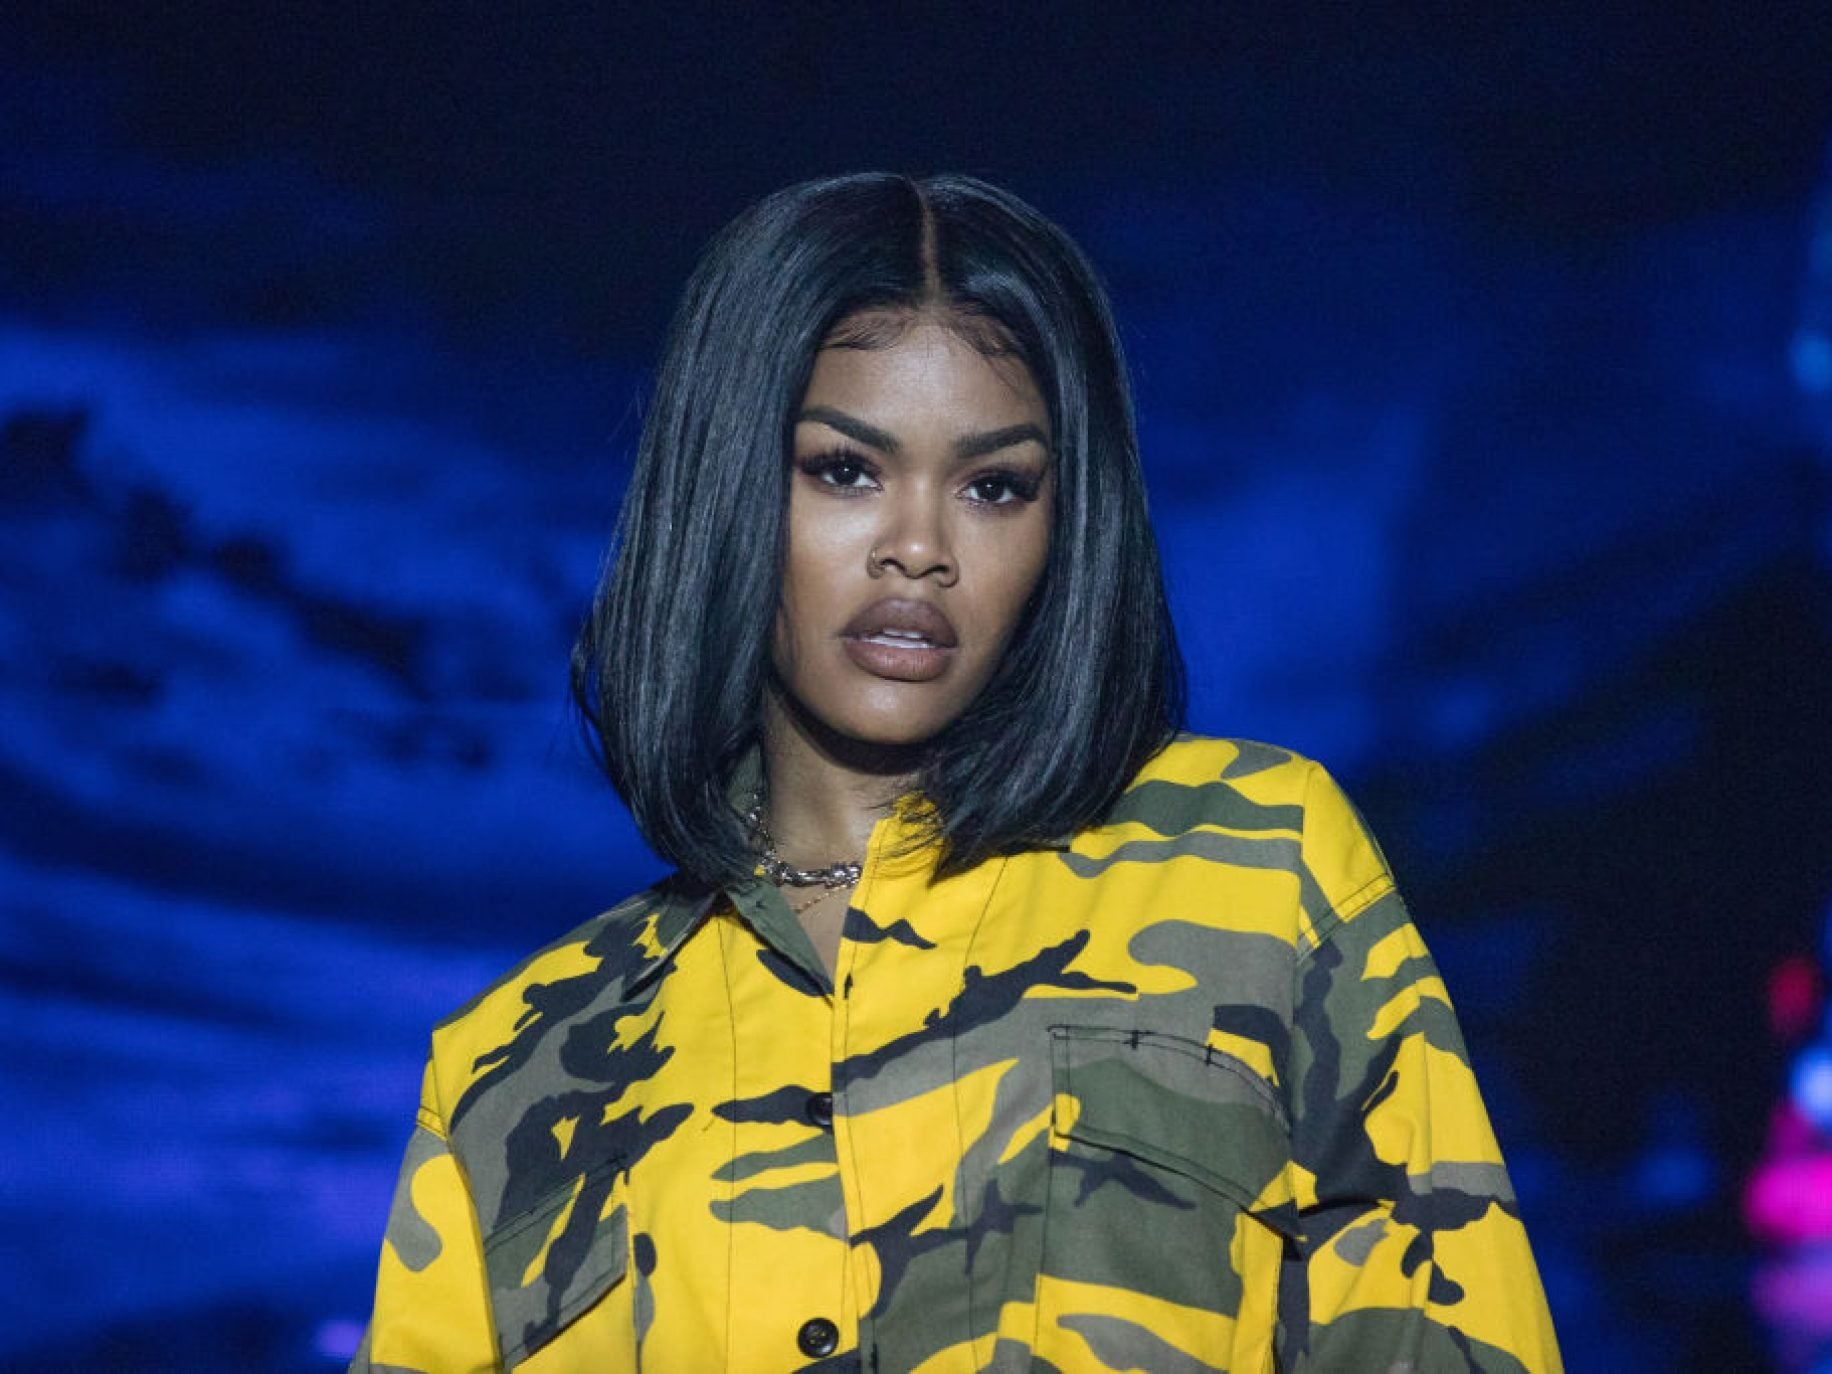 Teyana Taylor Announces She's Retiring After Being 'Unappreciated' And 'Overlooked' By The Music 'Machine'